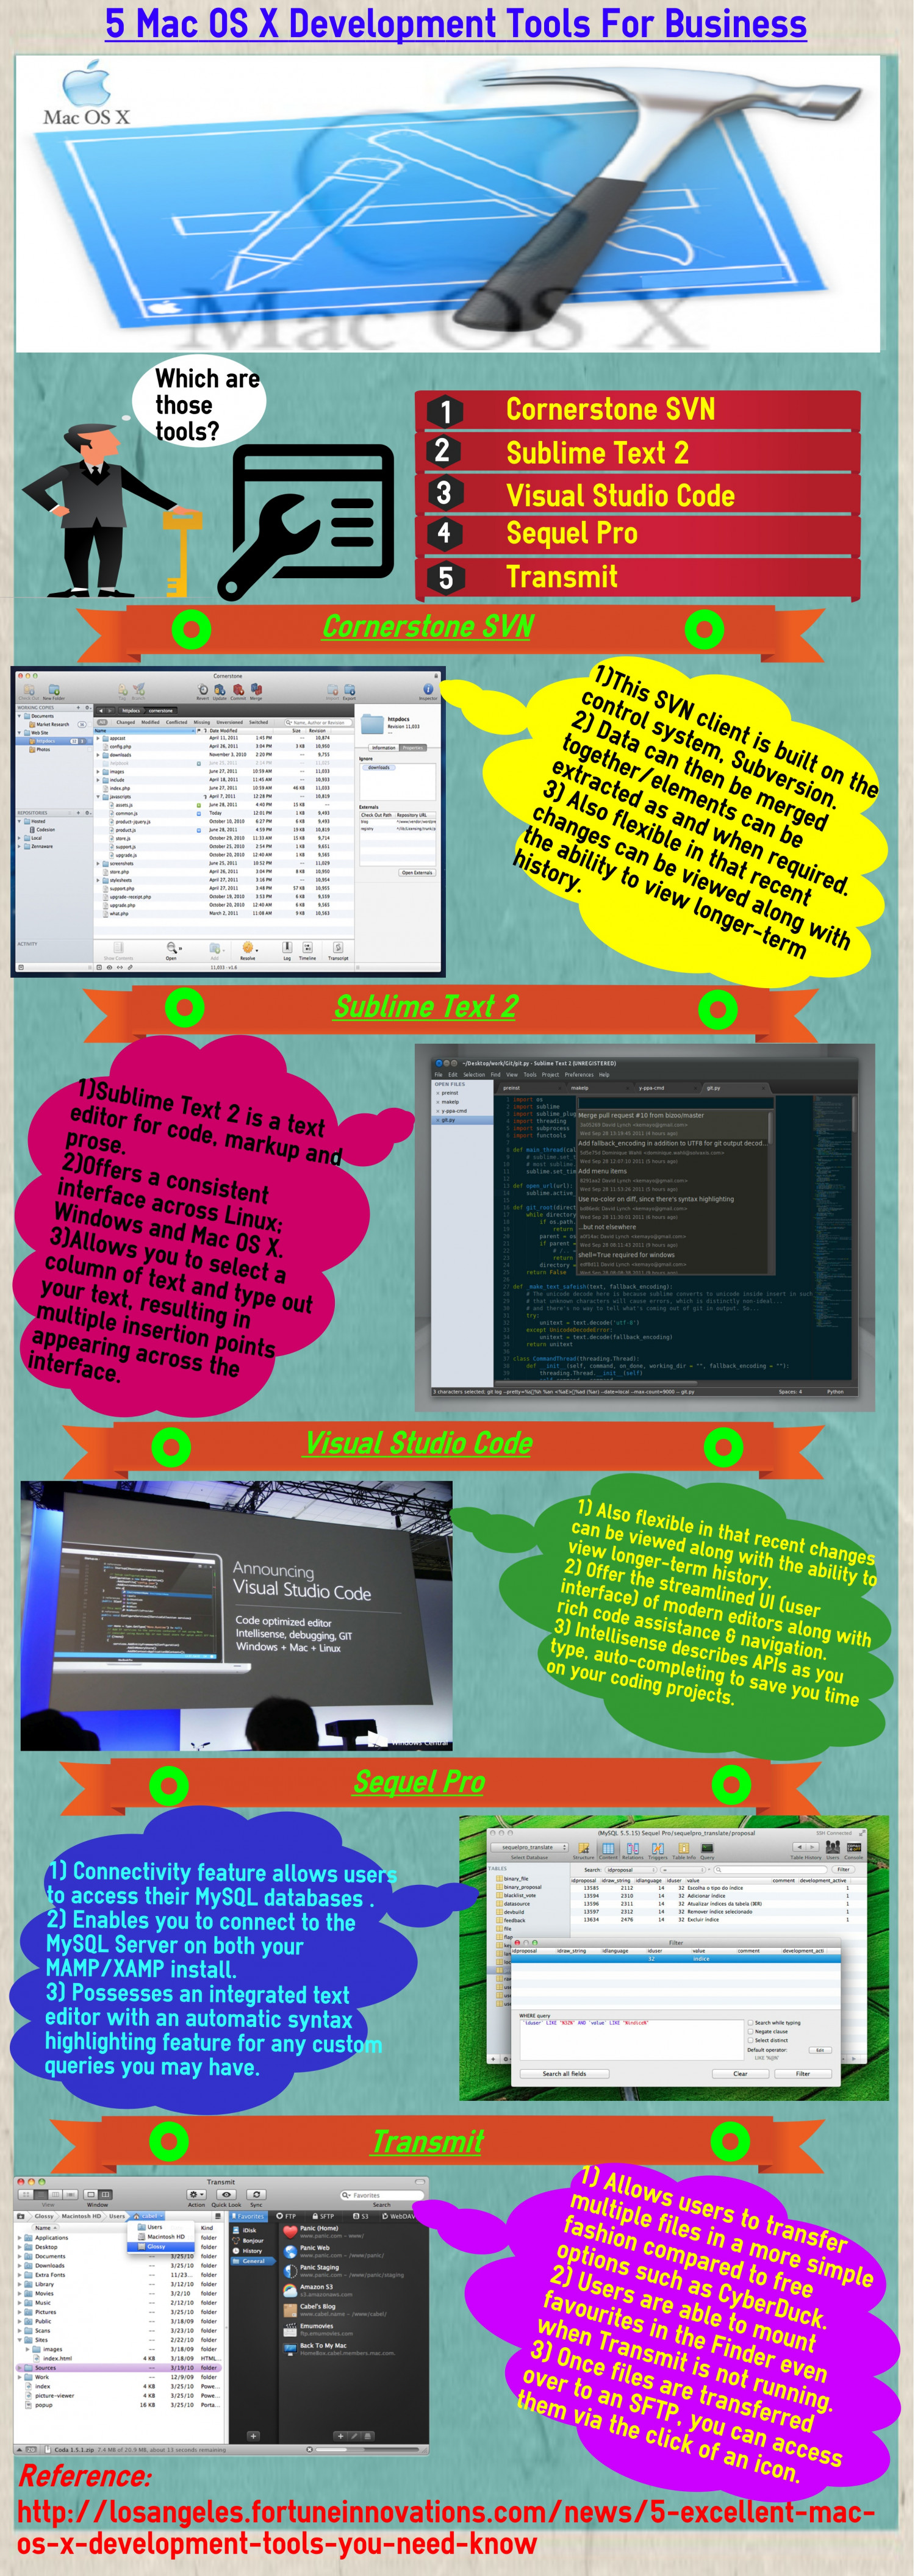 5 Mac OS X Development Tools For Your Business Infographic